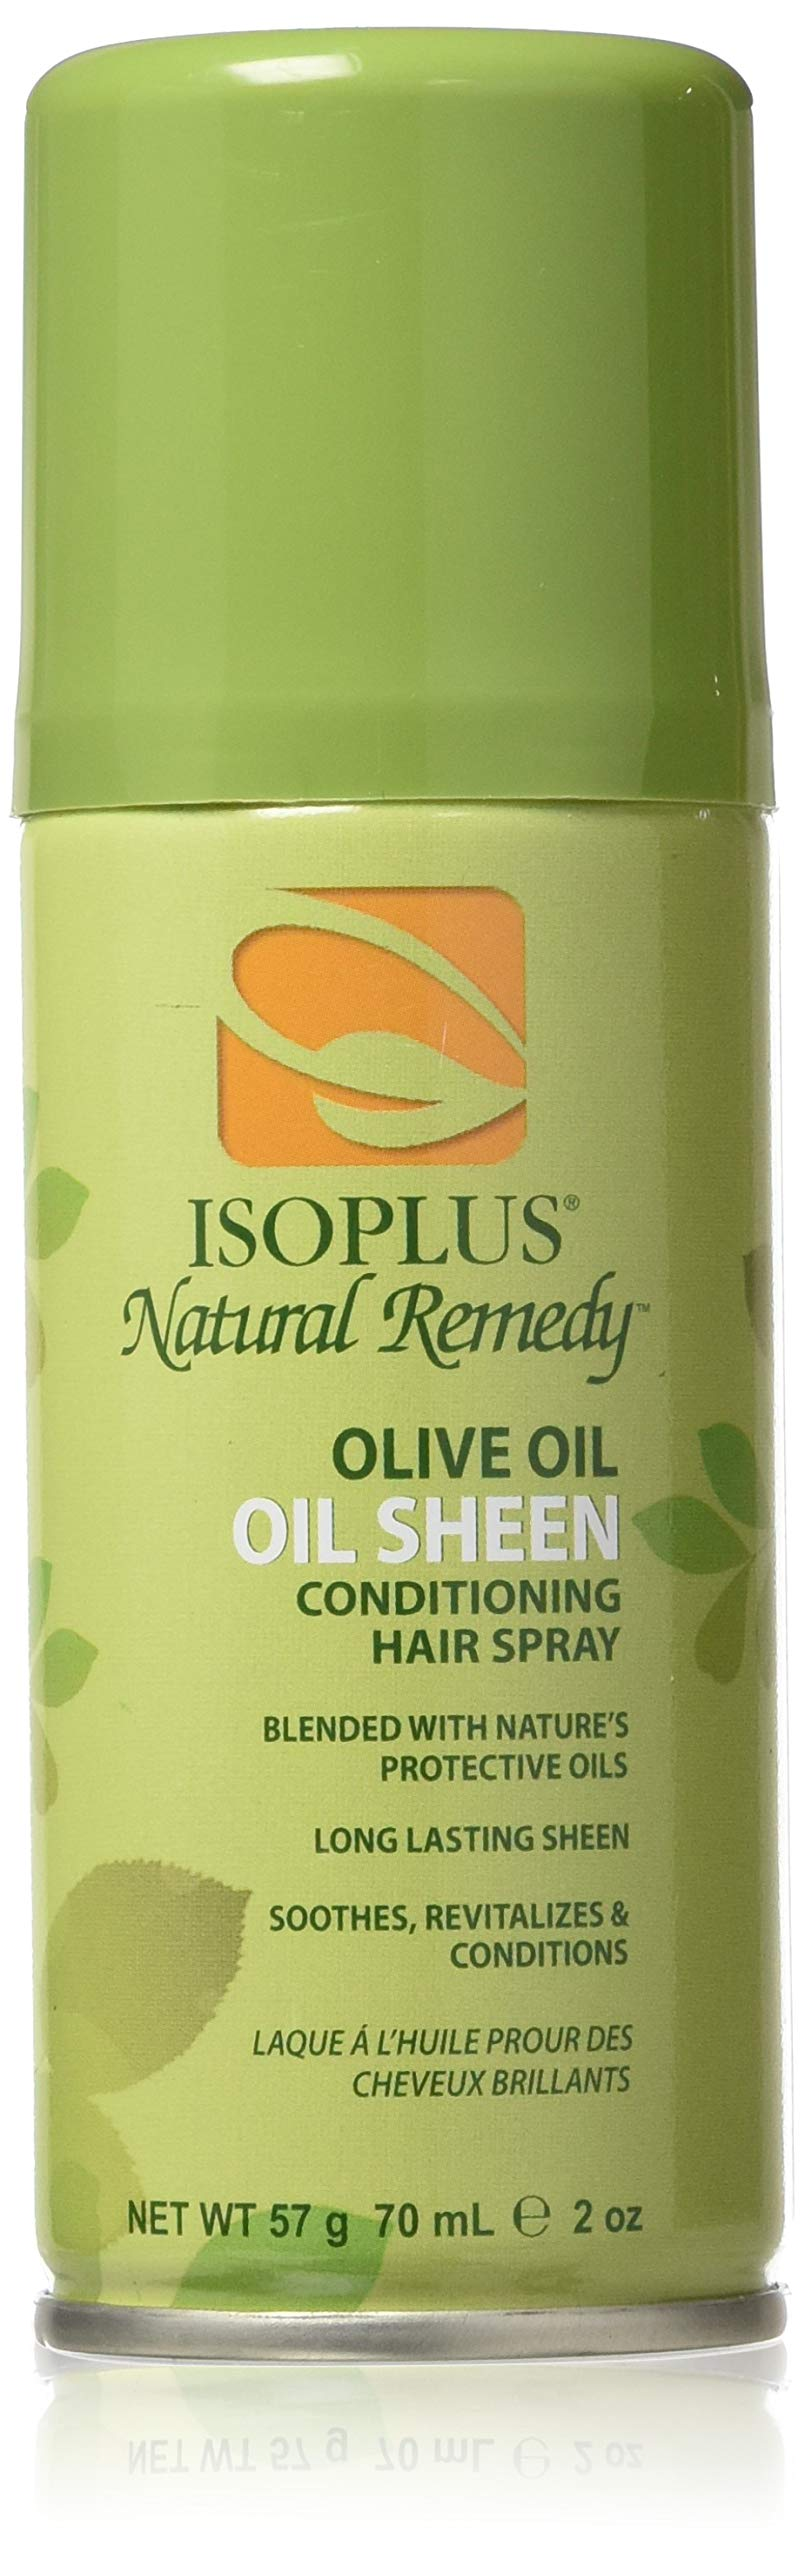 Isoplus Natural Remedy Olive Oil Sheen Spray, Trial Size, 2 Ounce